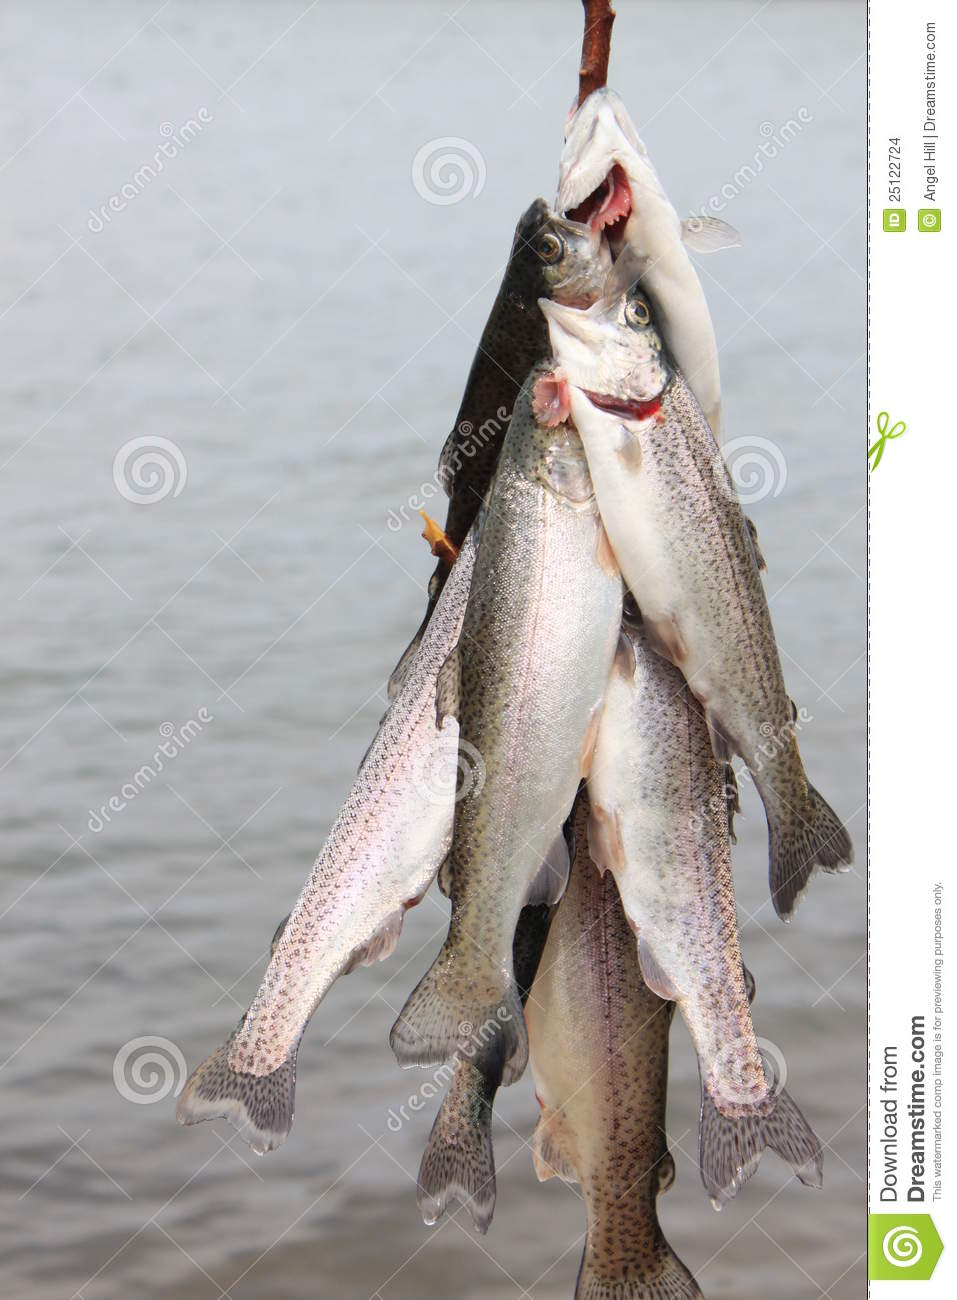 Trout on a line stock images image 25122724 for How to use a fish stringer